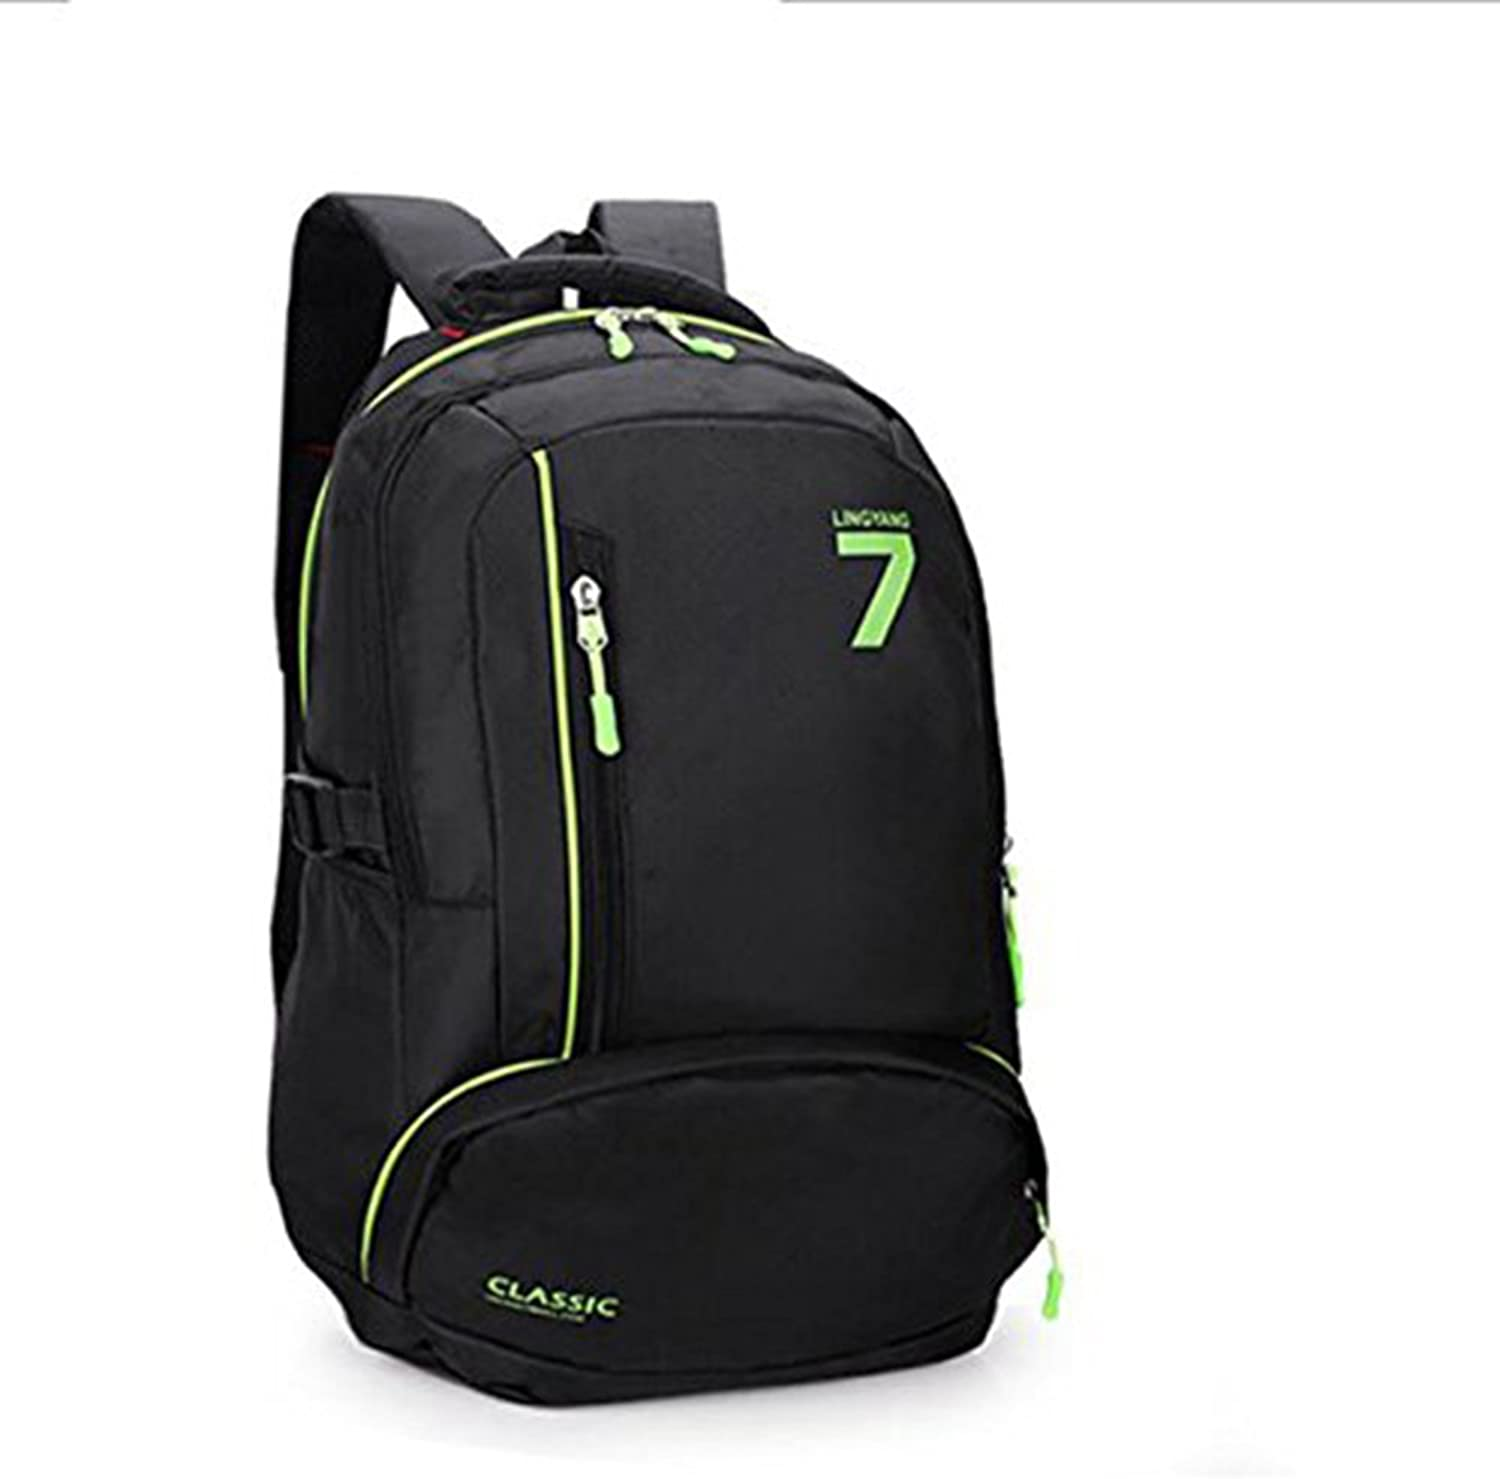 Outdoor Backpack Sports Casual Bags Male and Female Couples Fashion Backpacks,Green